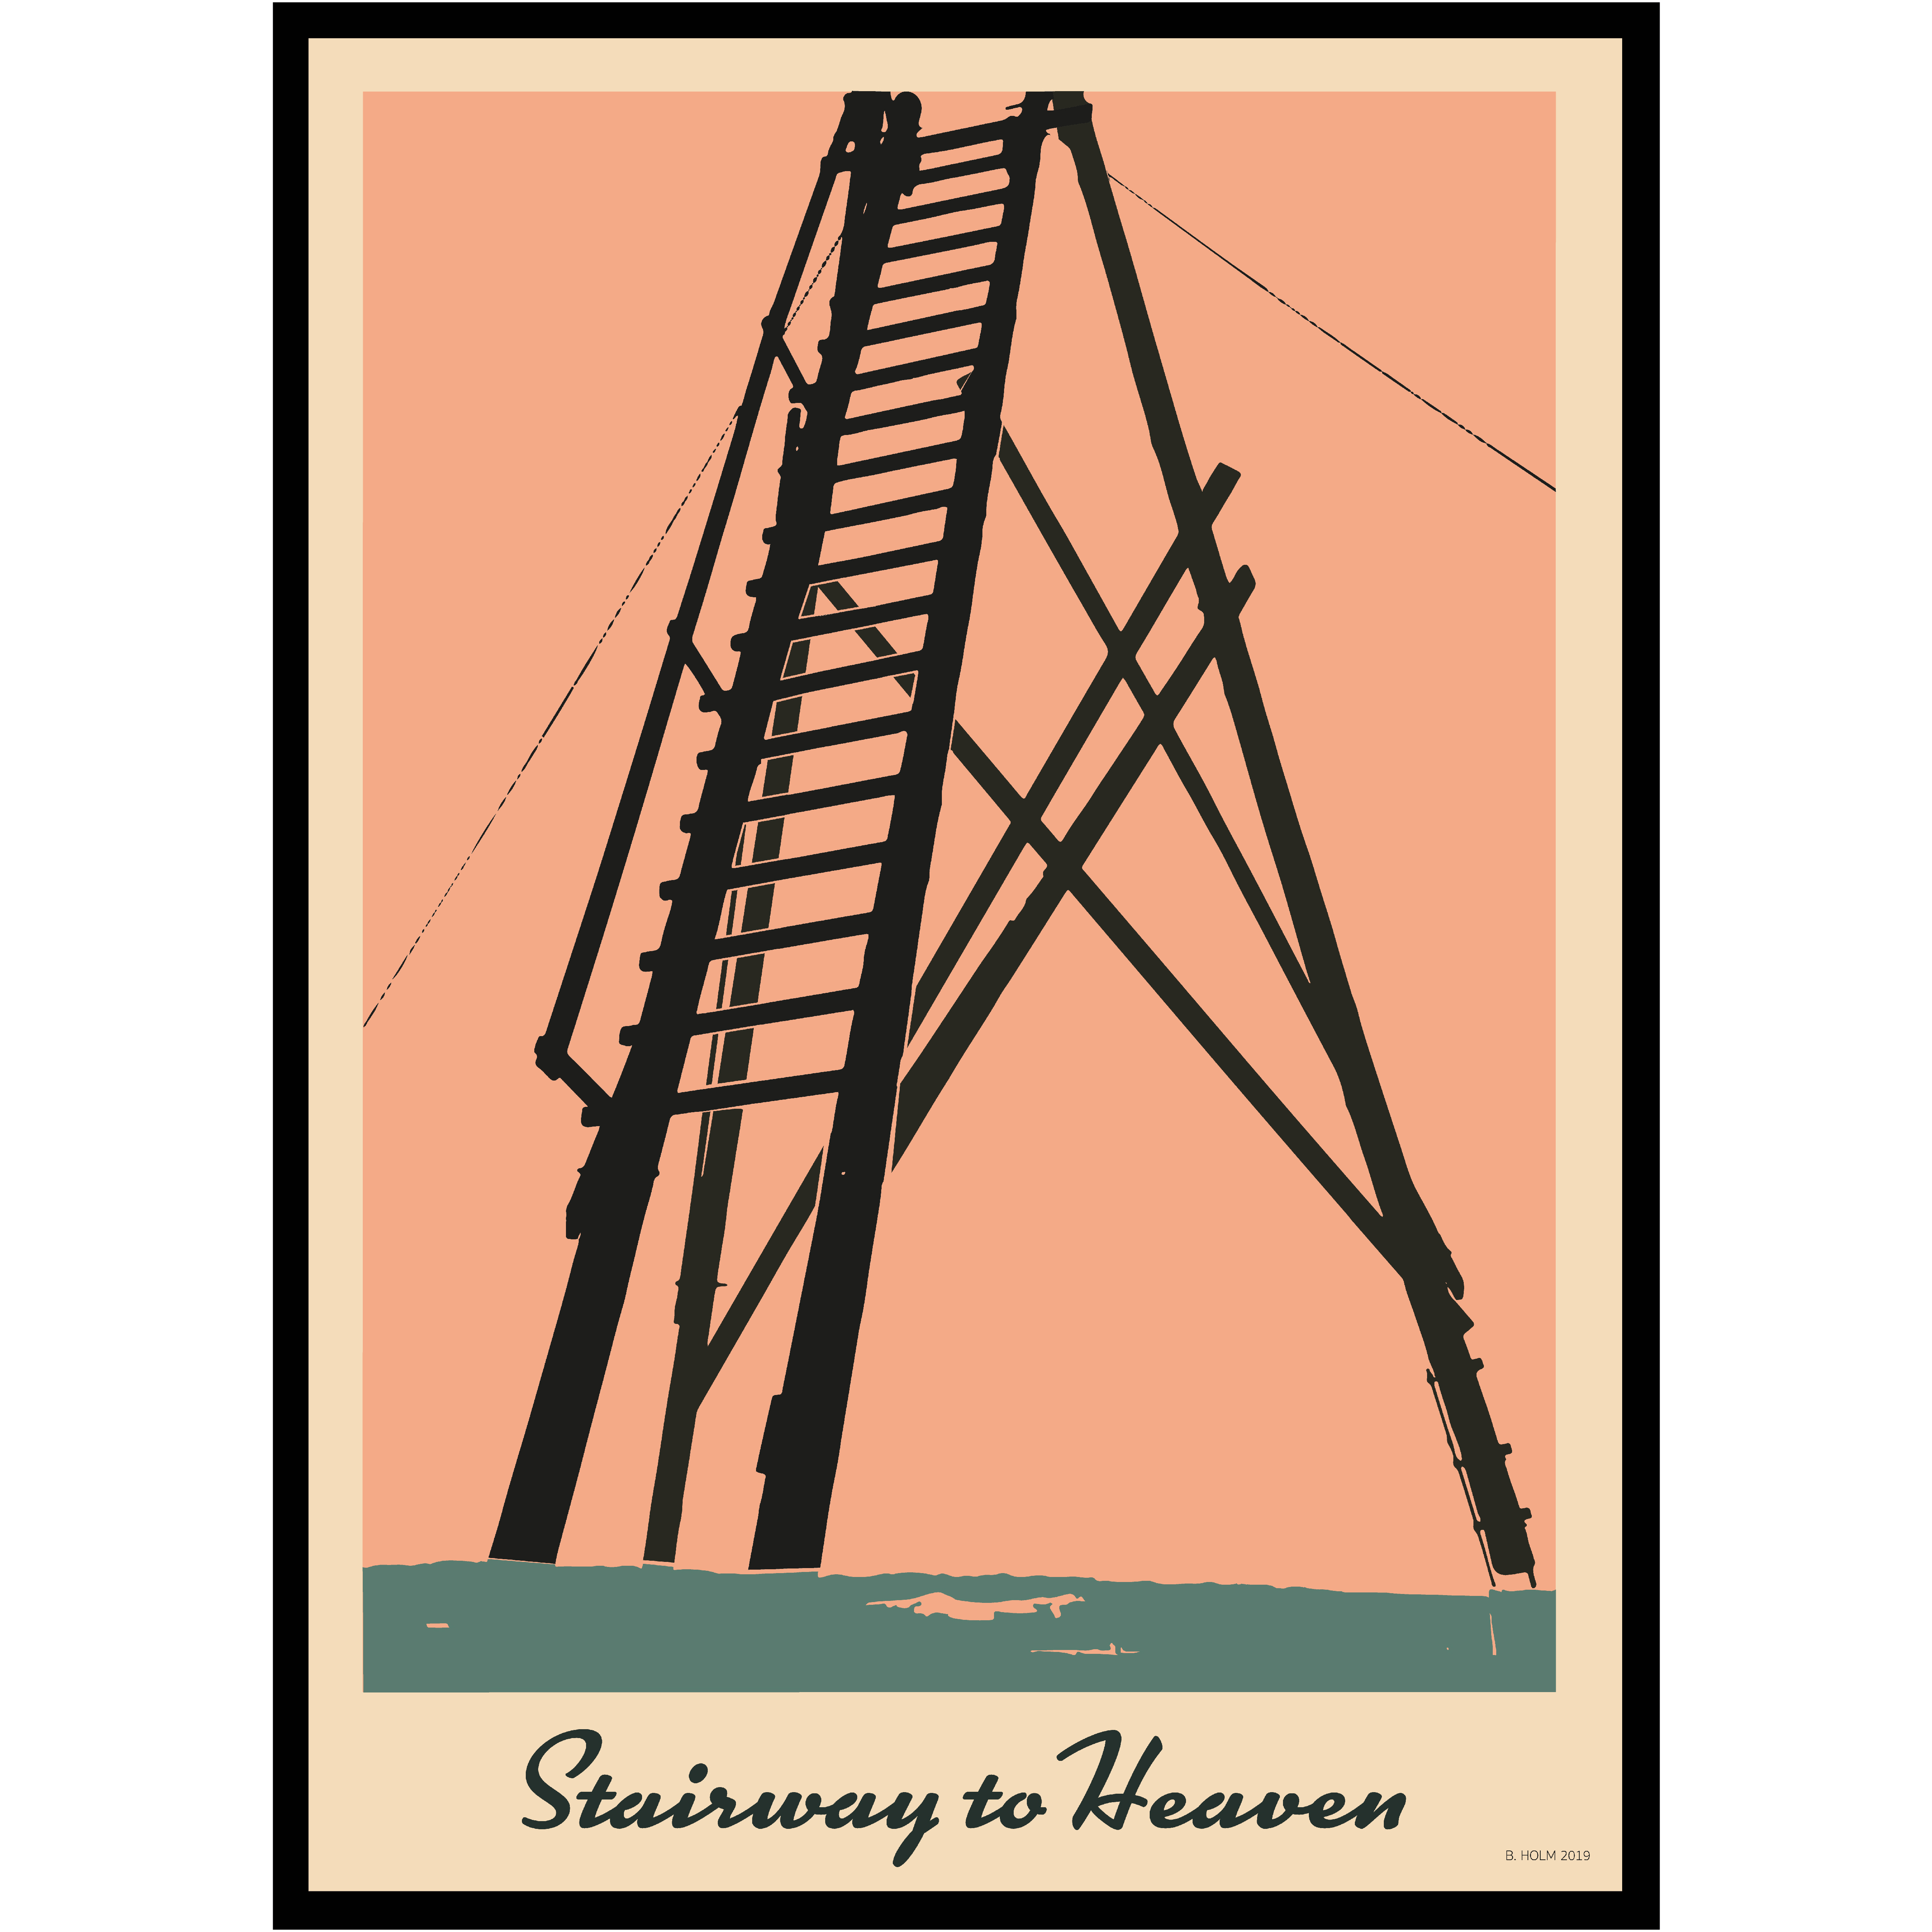 A011 Poster Stairway to Heaven